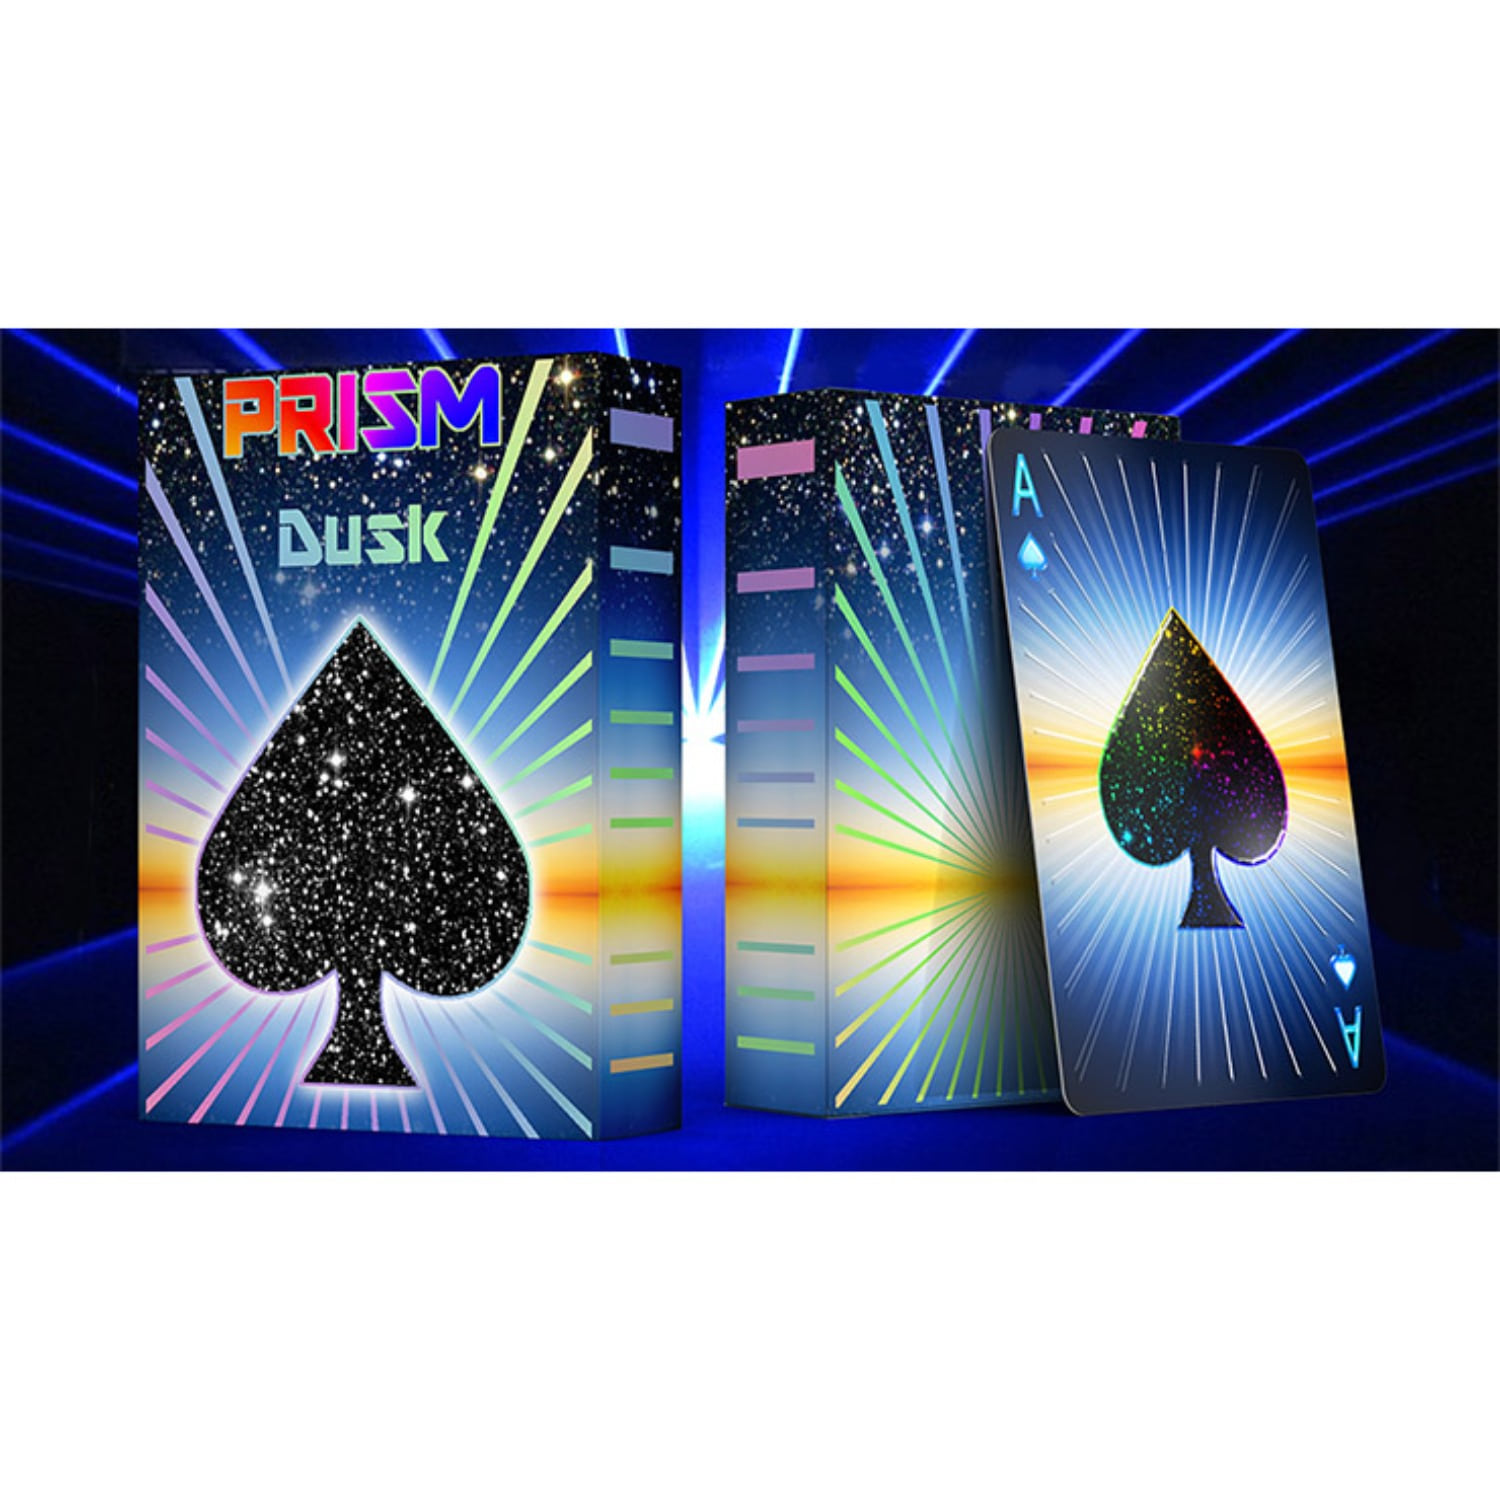 Prism Dusk Playing Cards by Elephant Playing Cards